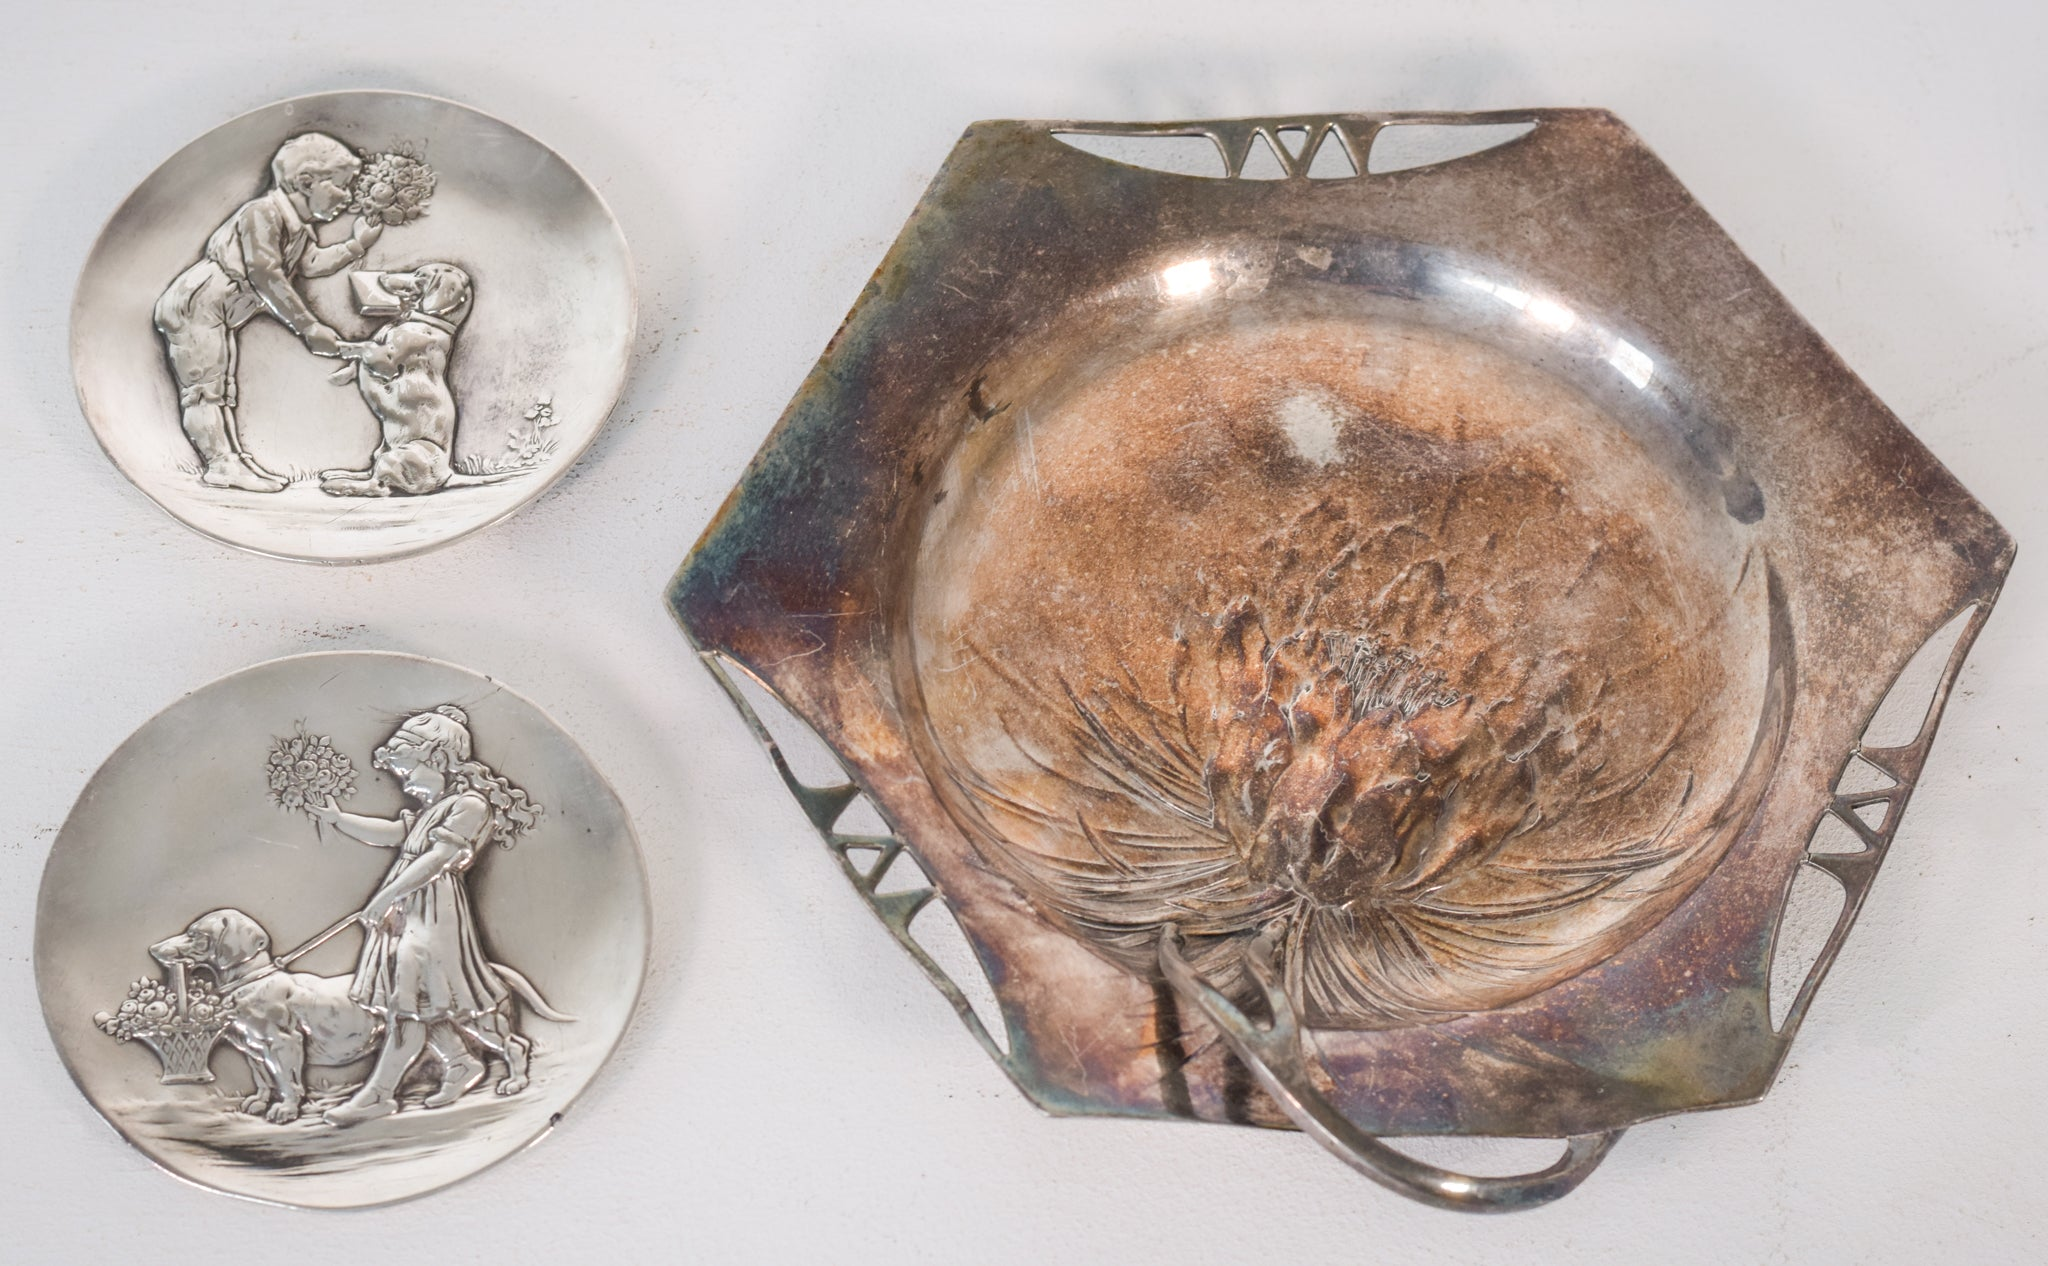 Two Art Nouveau Wmf Pewter Dishes and one other stamped orivit